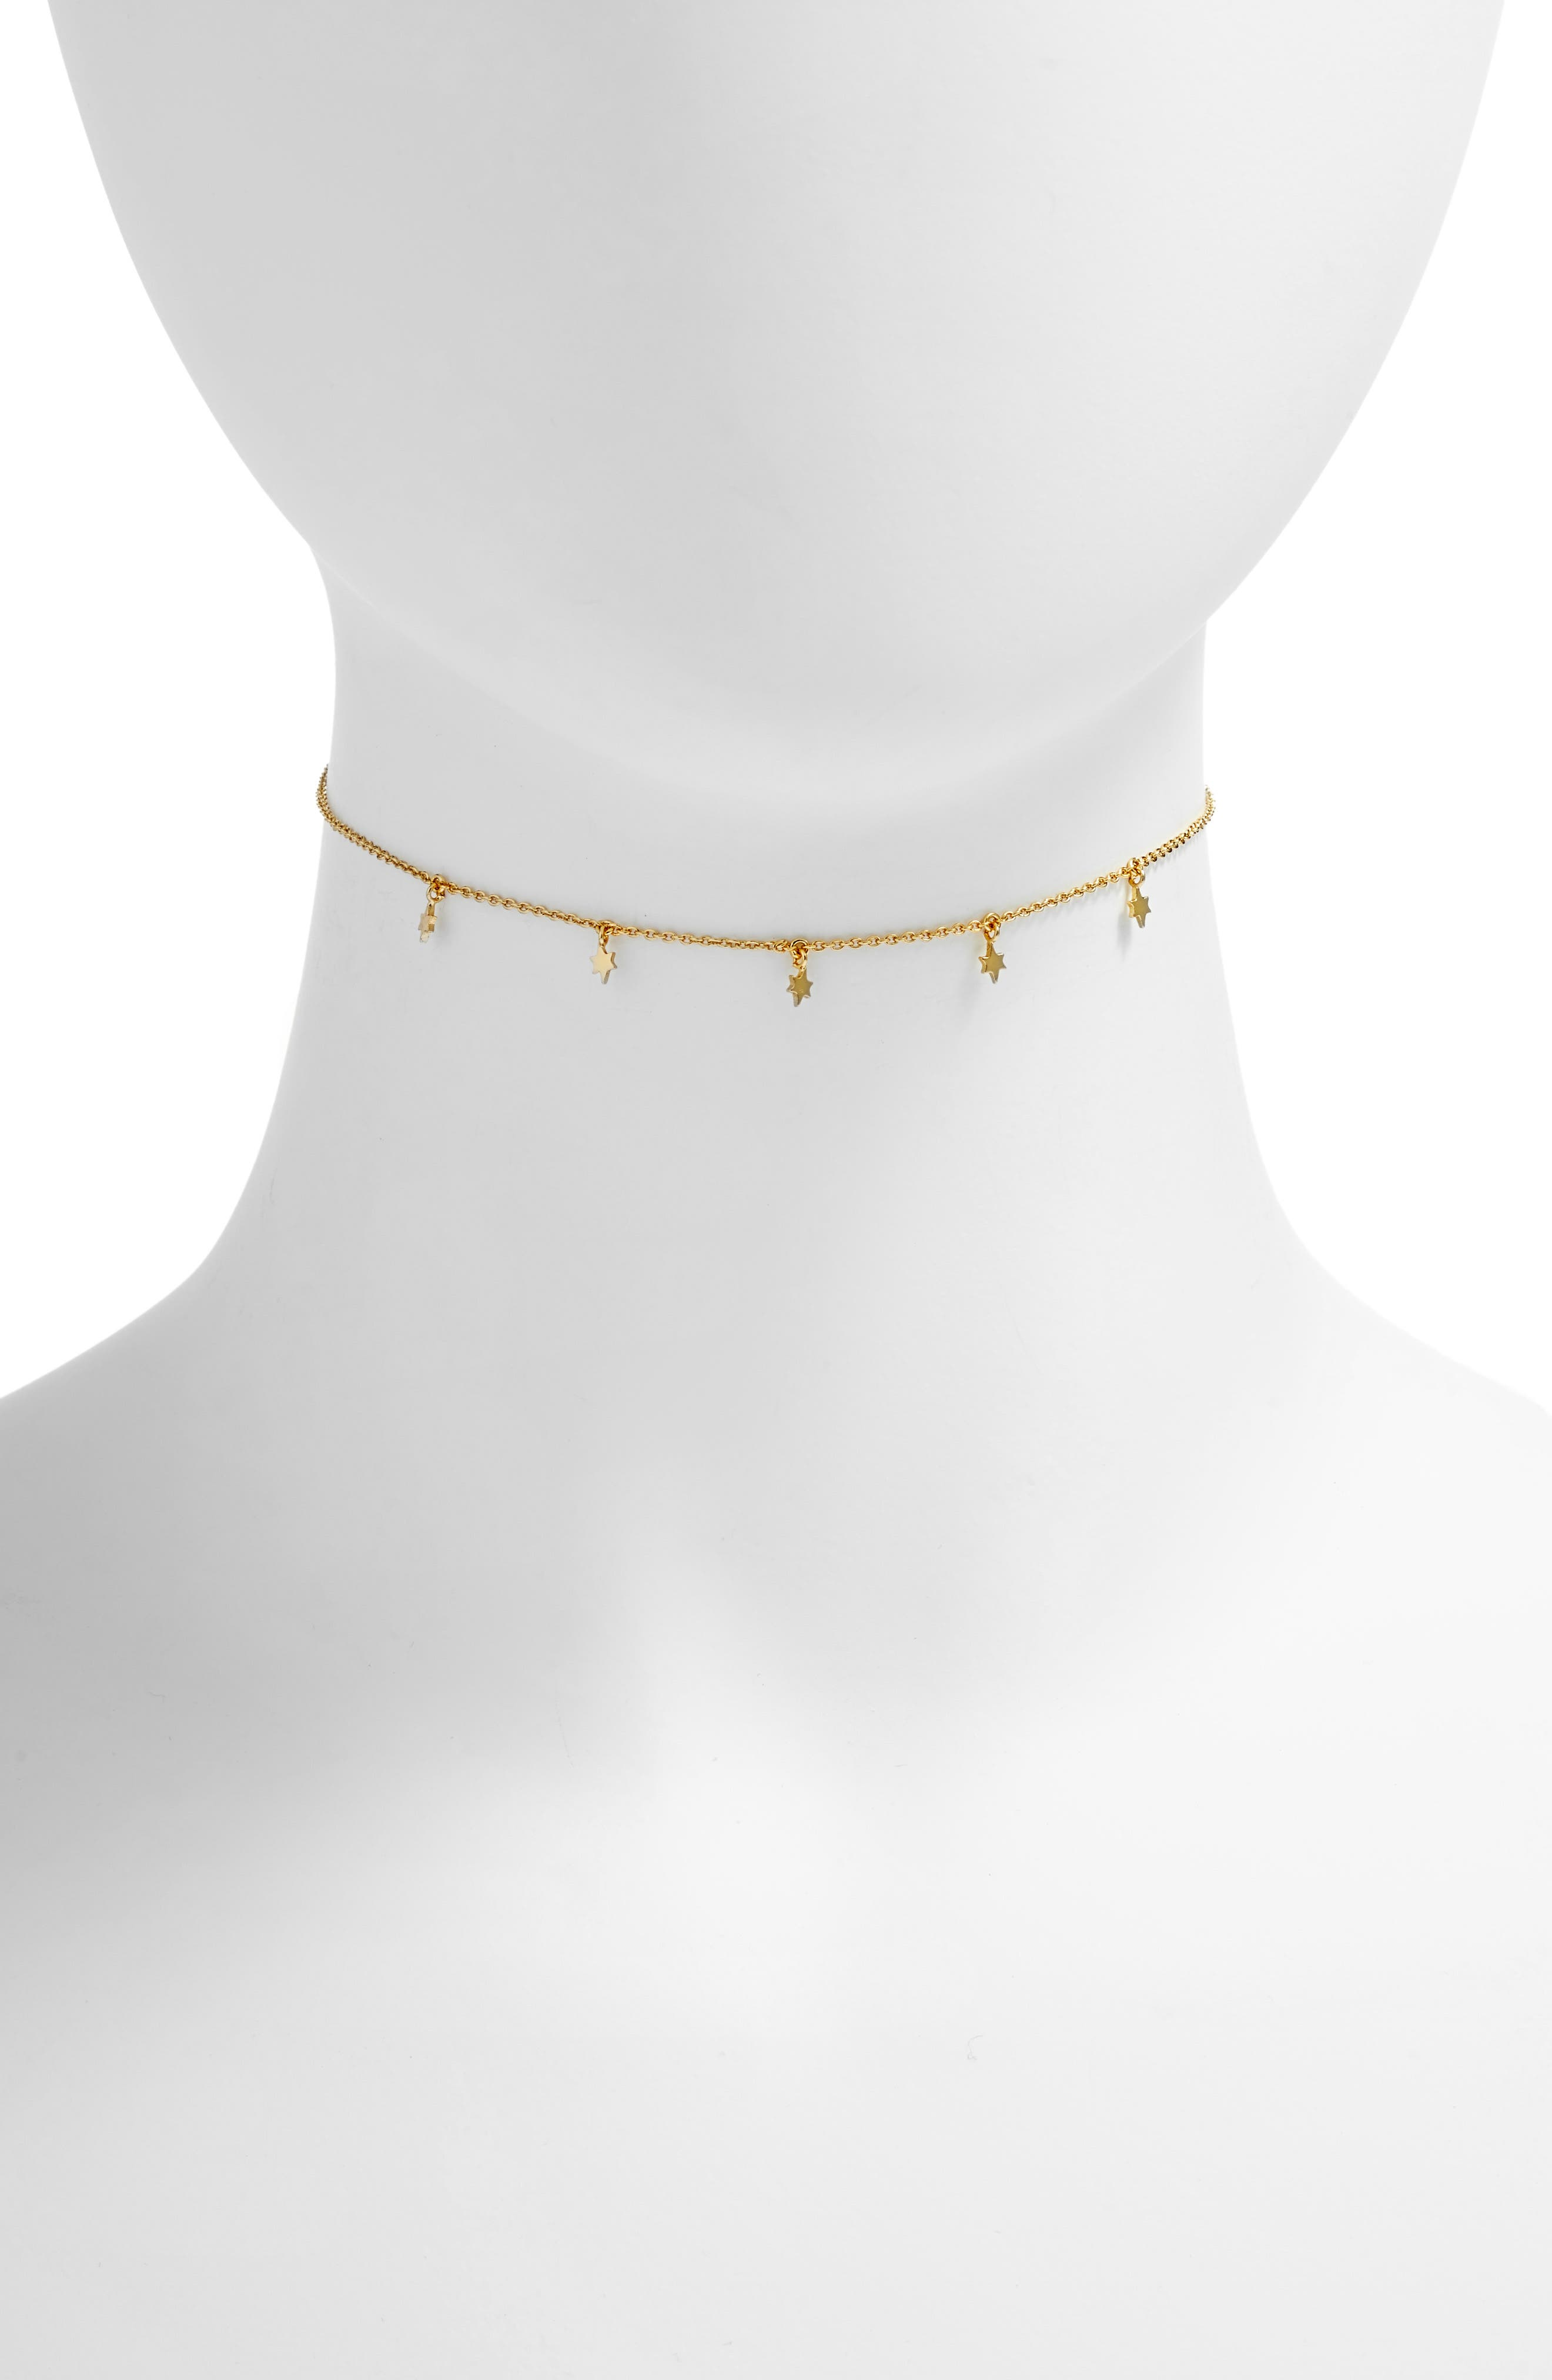 FIVE AND TWO Josie Choker Necklace, Main, color, 710